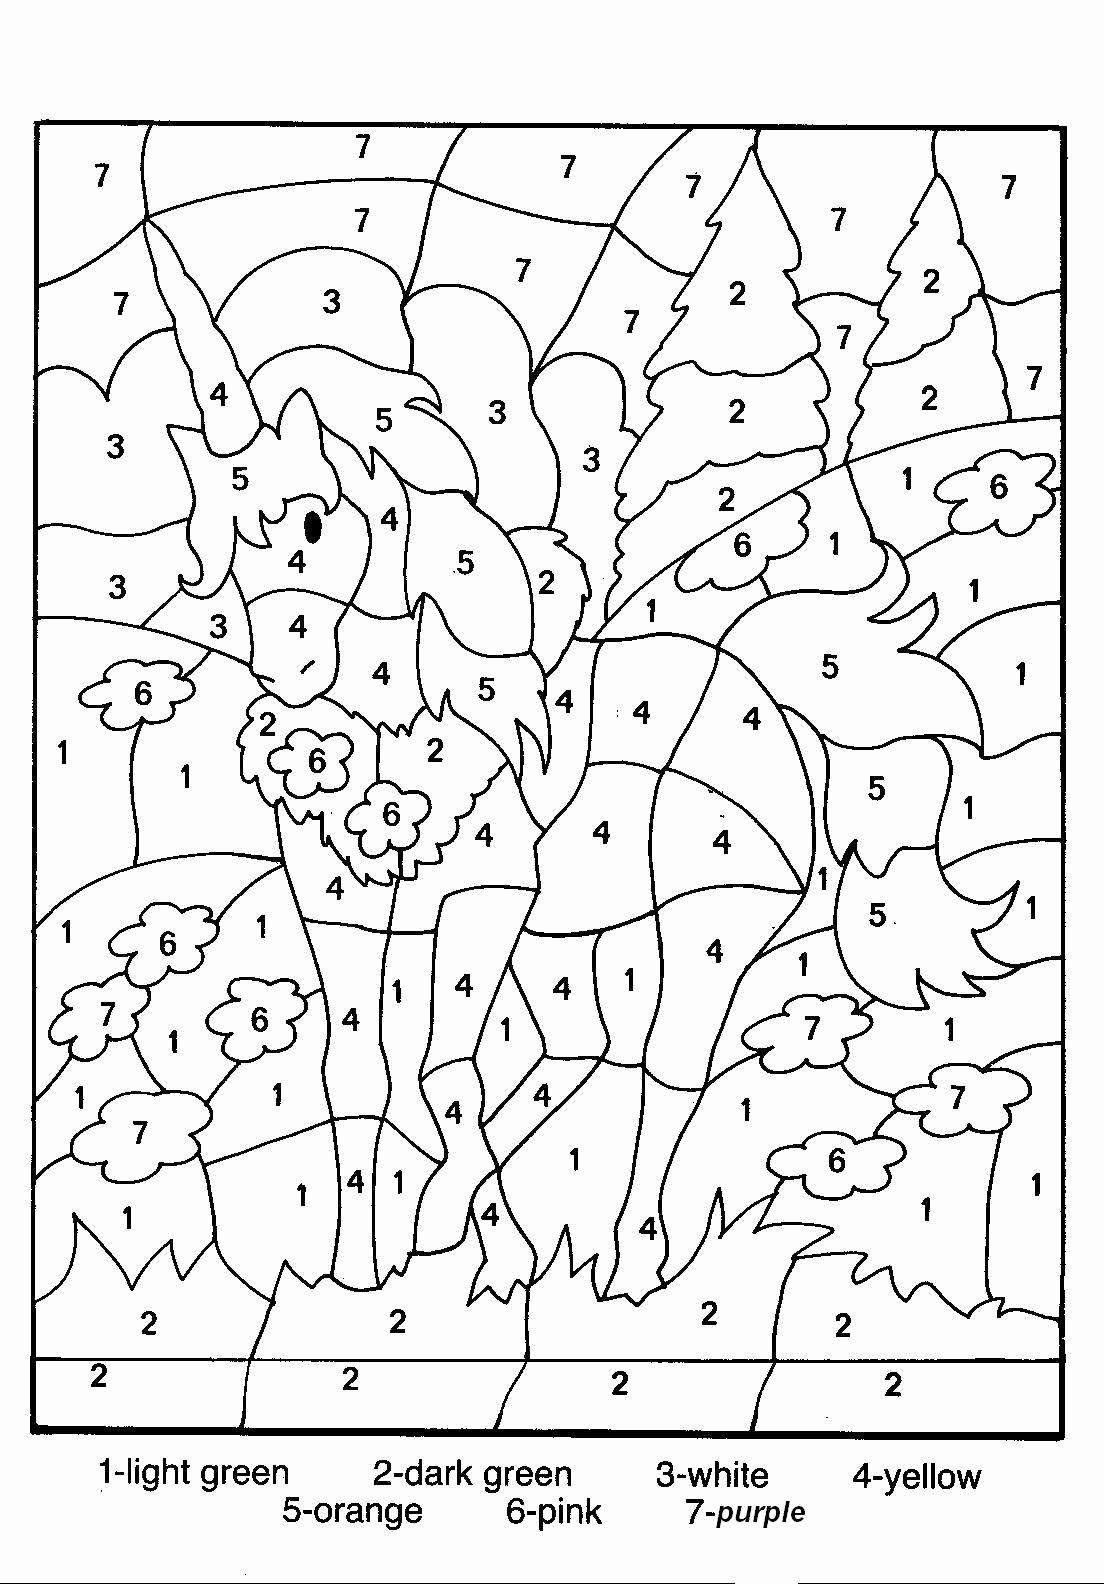 Free Colouring Worksheets for Preschoolers Inspirational Free Printable Color by Number